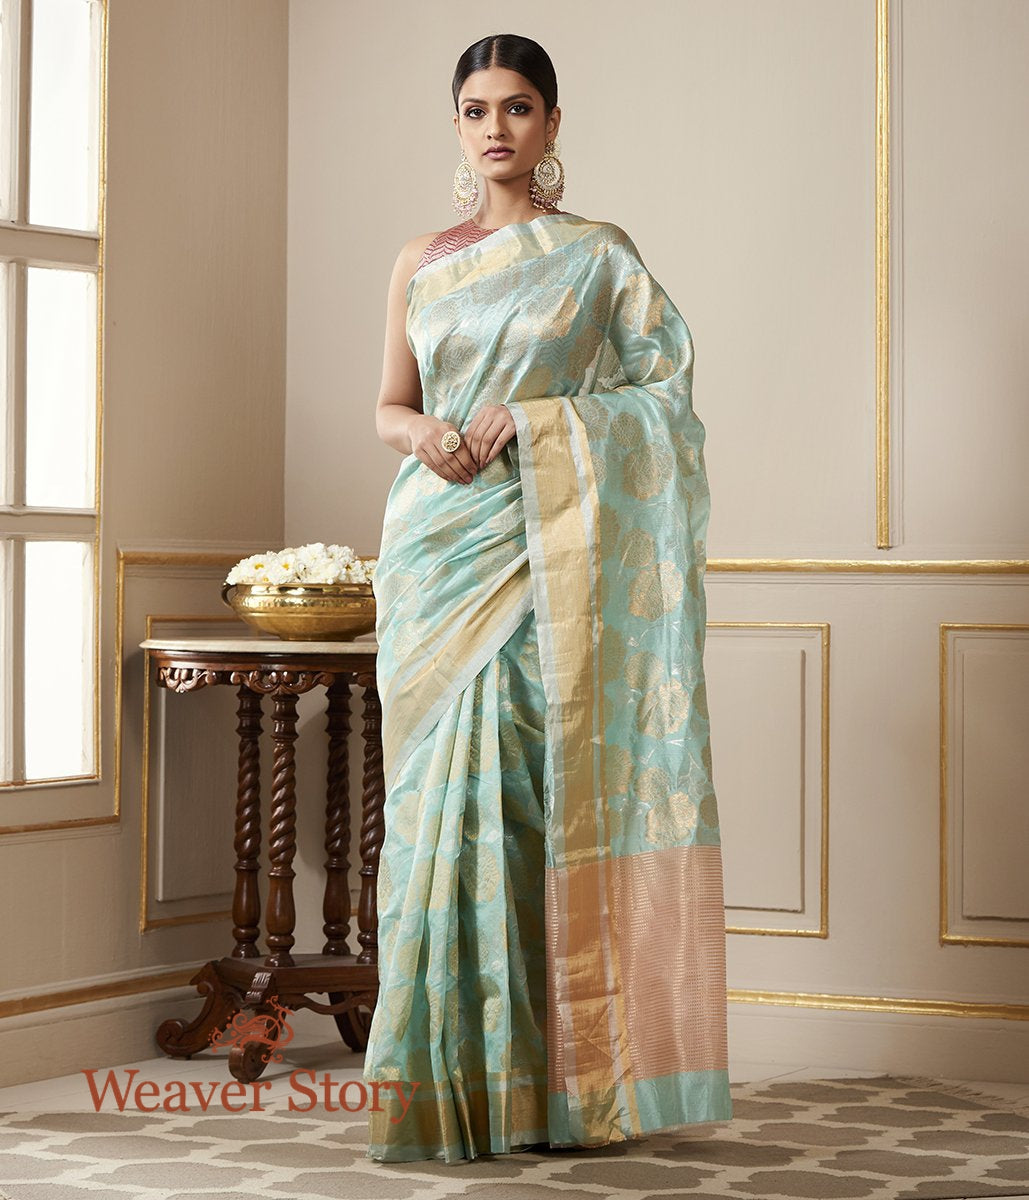 Handwoven Light Blue Chanderi Silk Saree with Gold and Silver Zari Floral Jaal